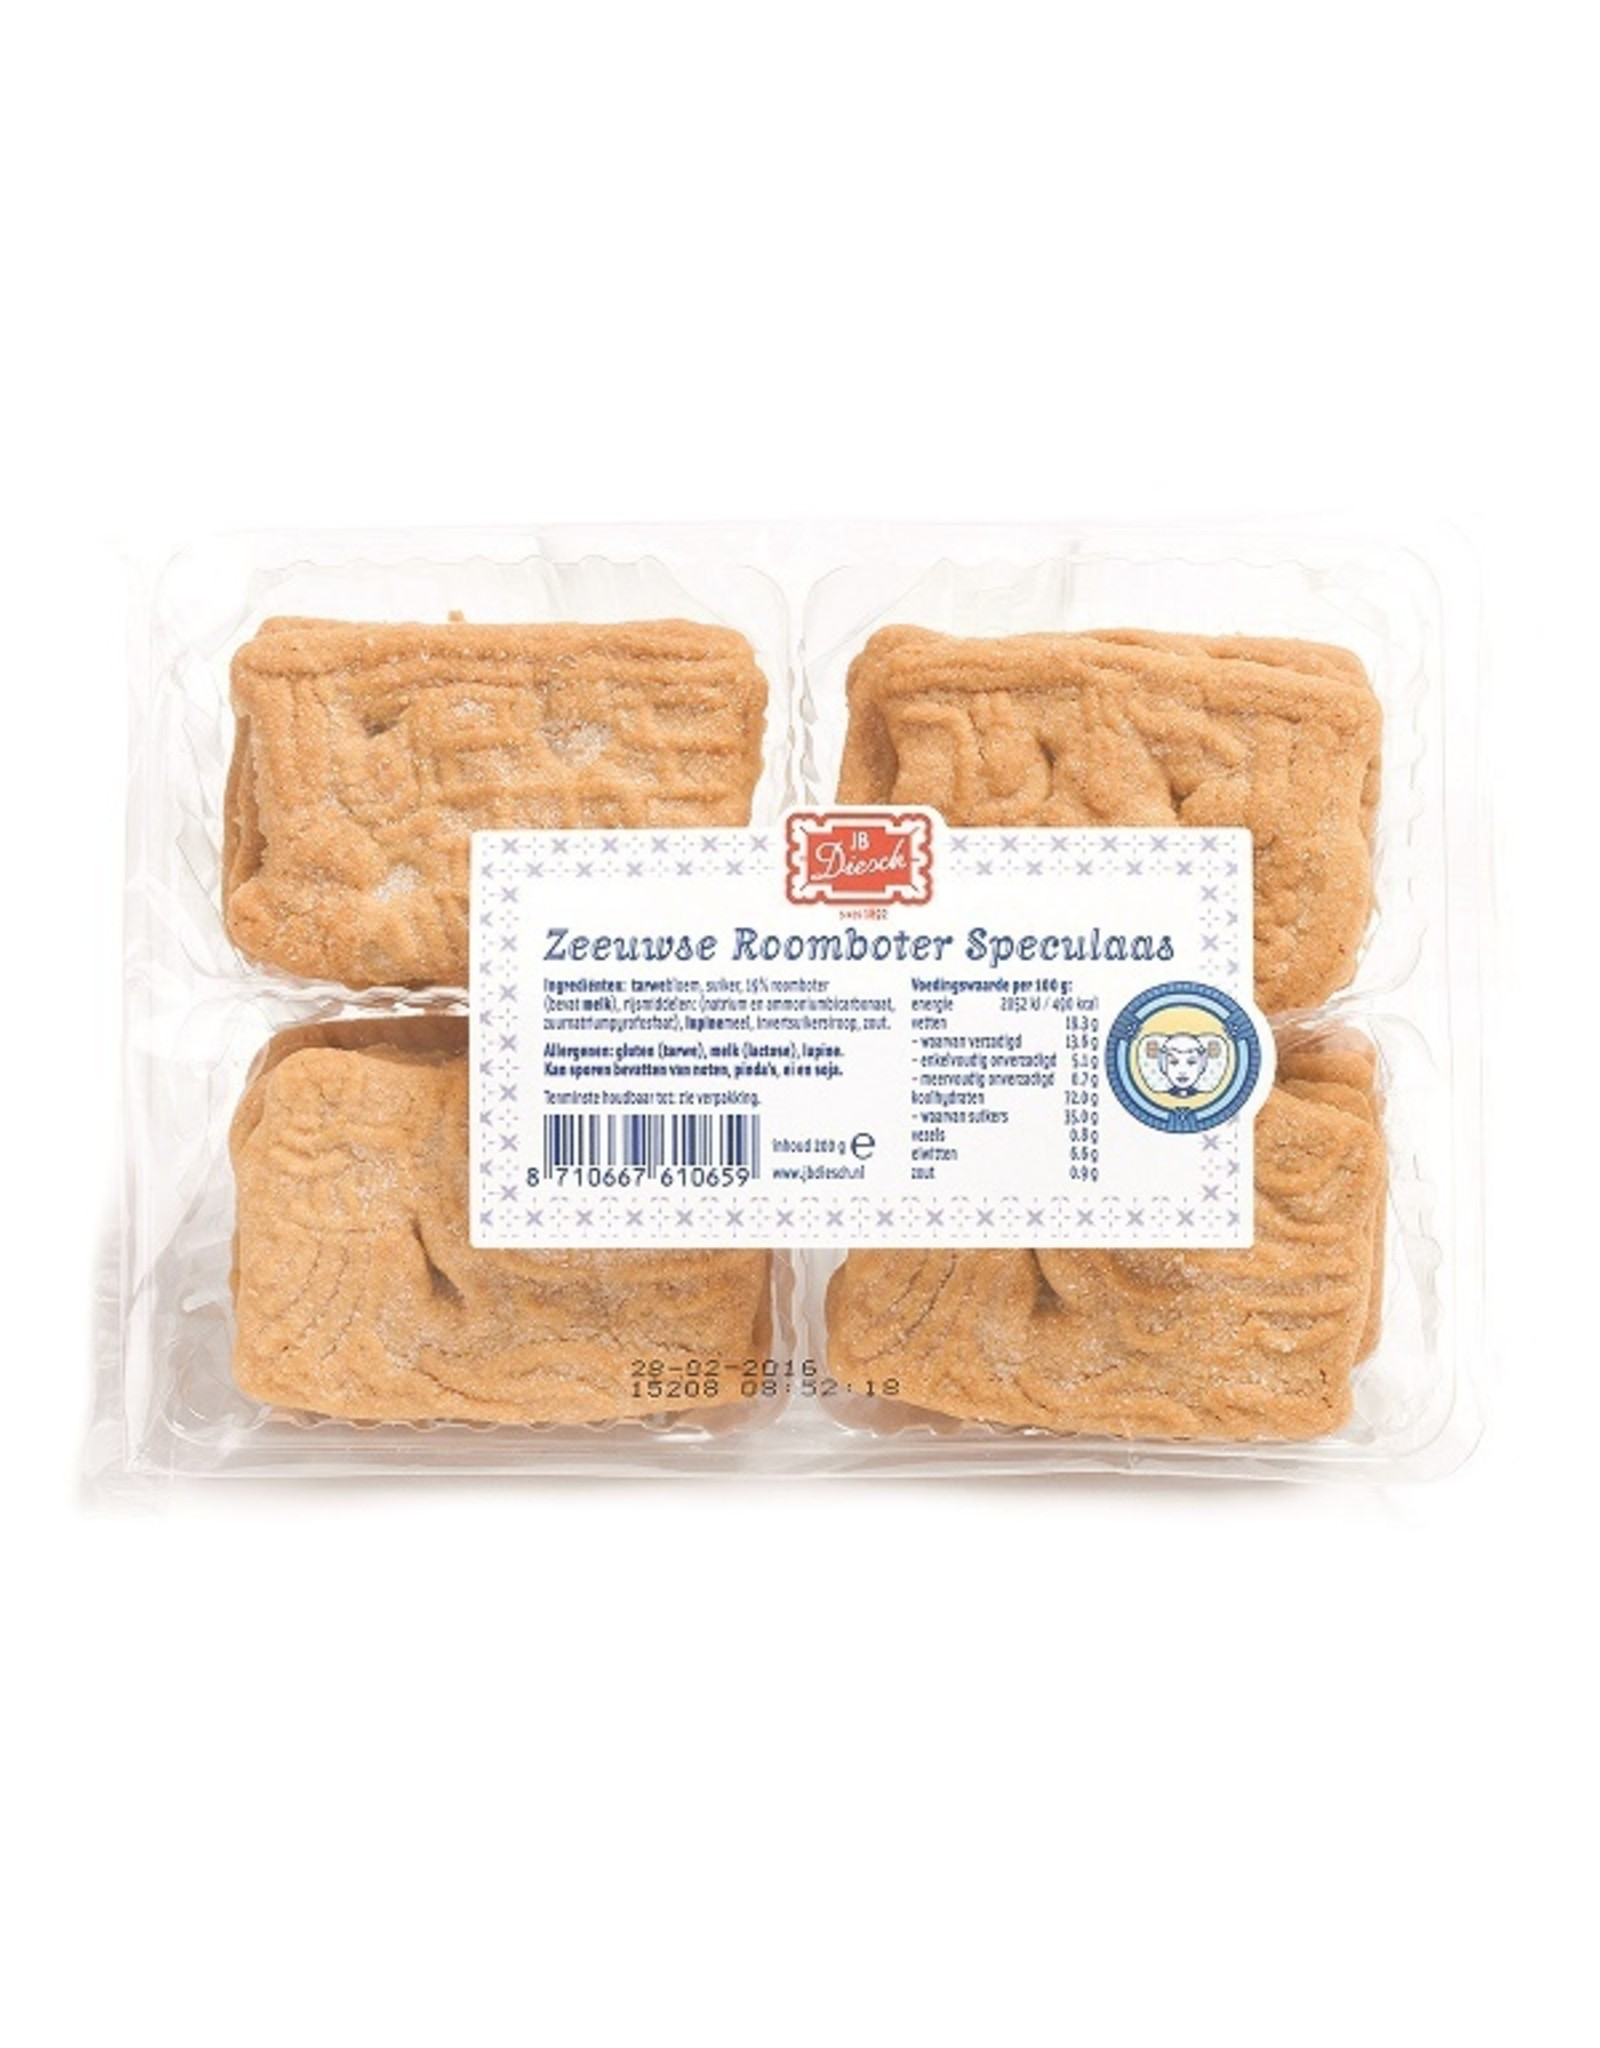 Zeeuwse roomboter speculaas.